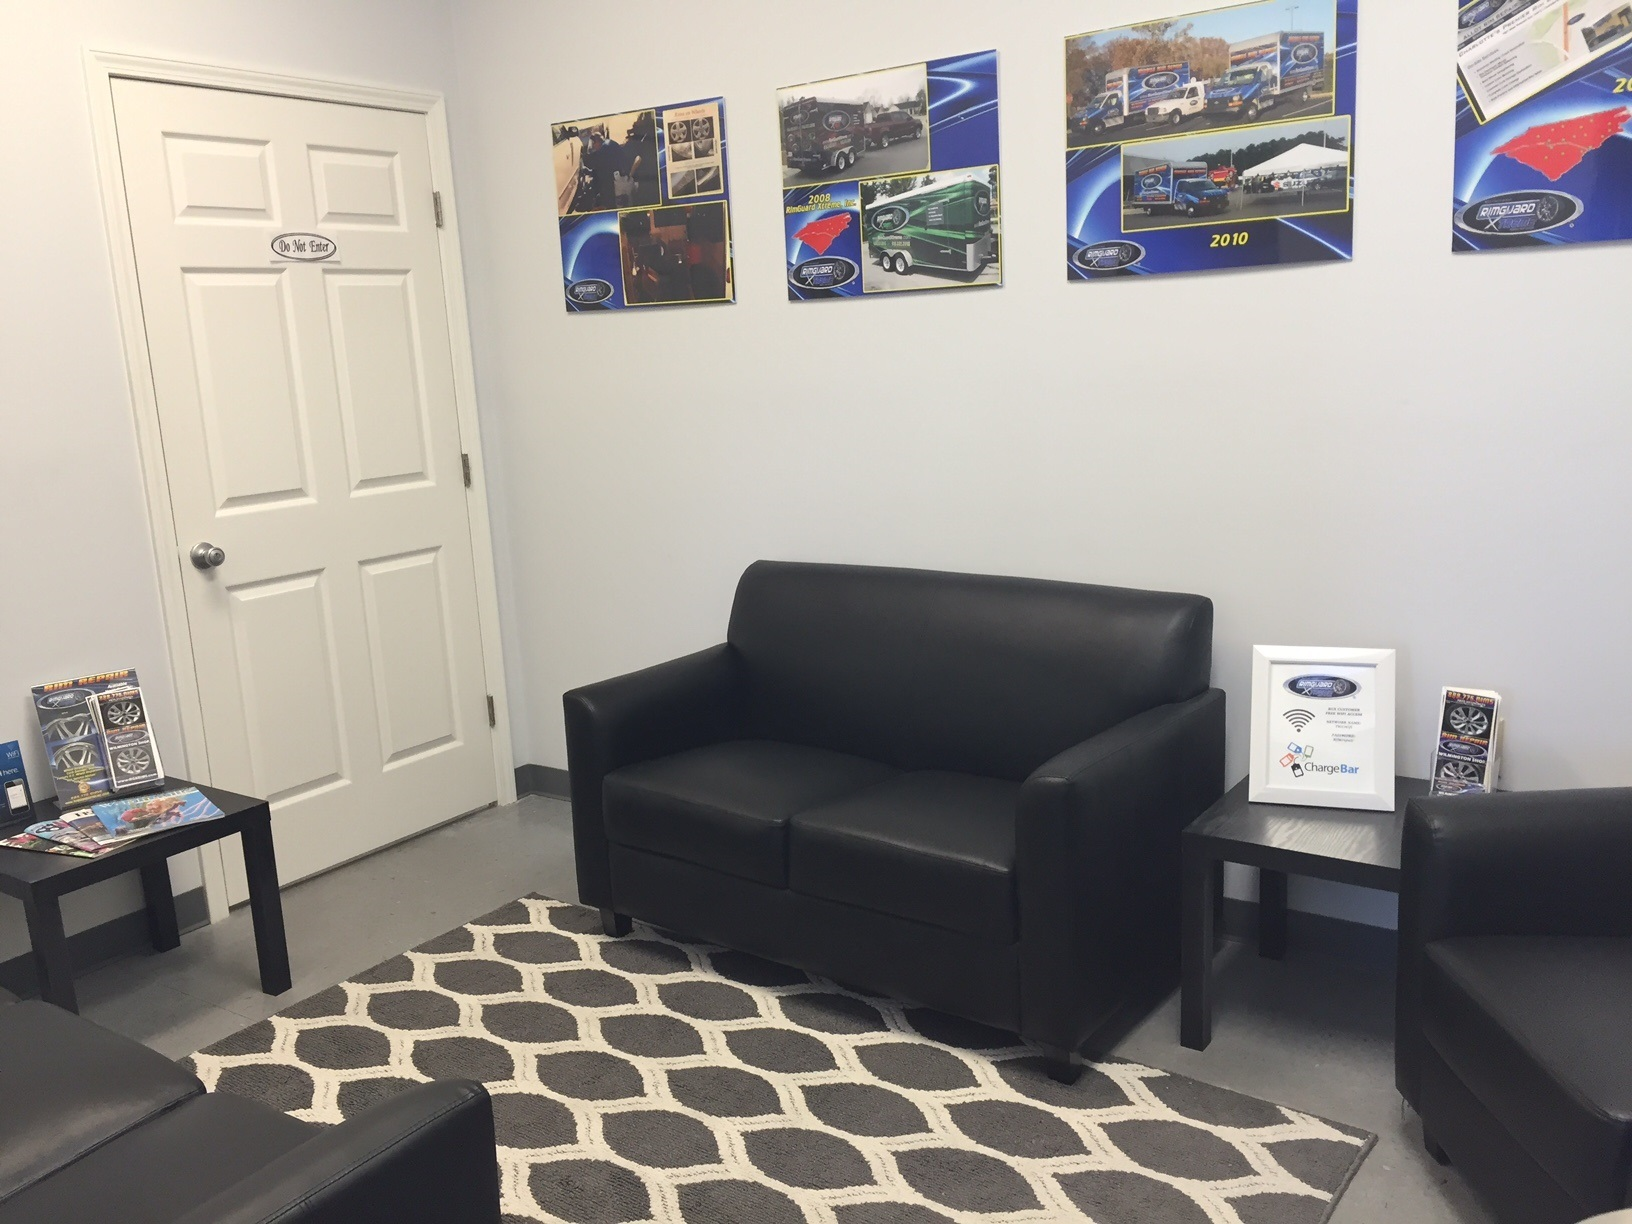 RGX Greensboro Rim Repair Waiting Room